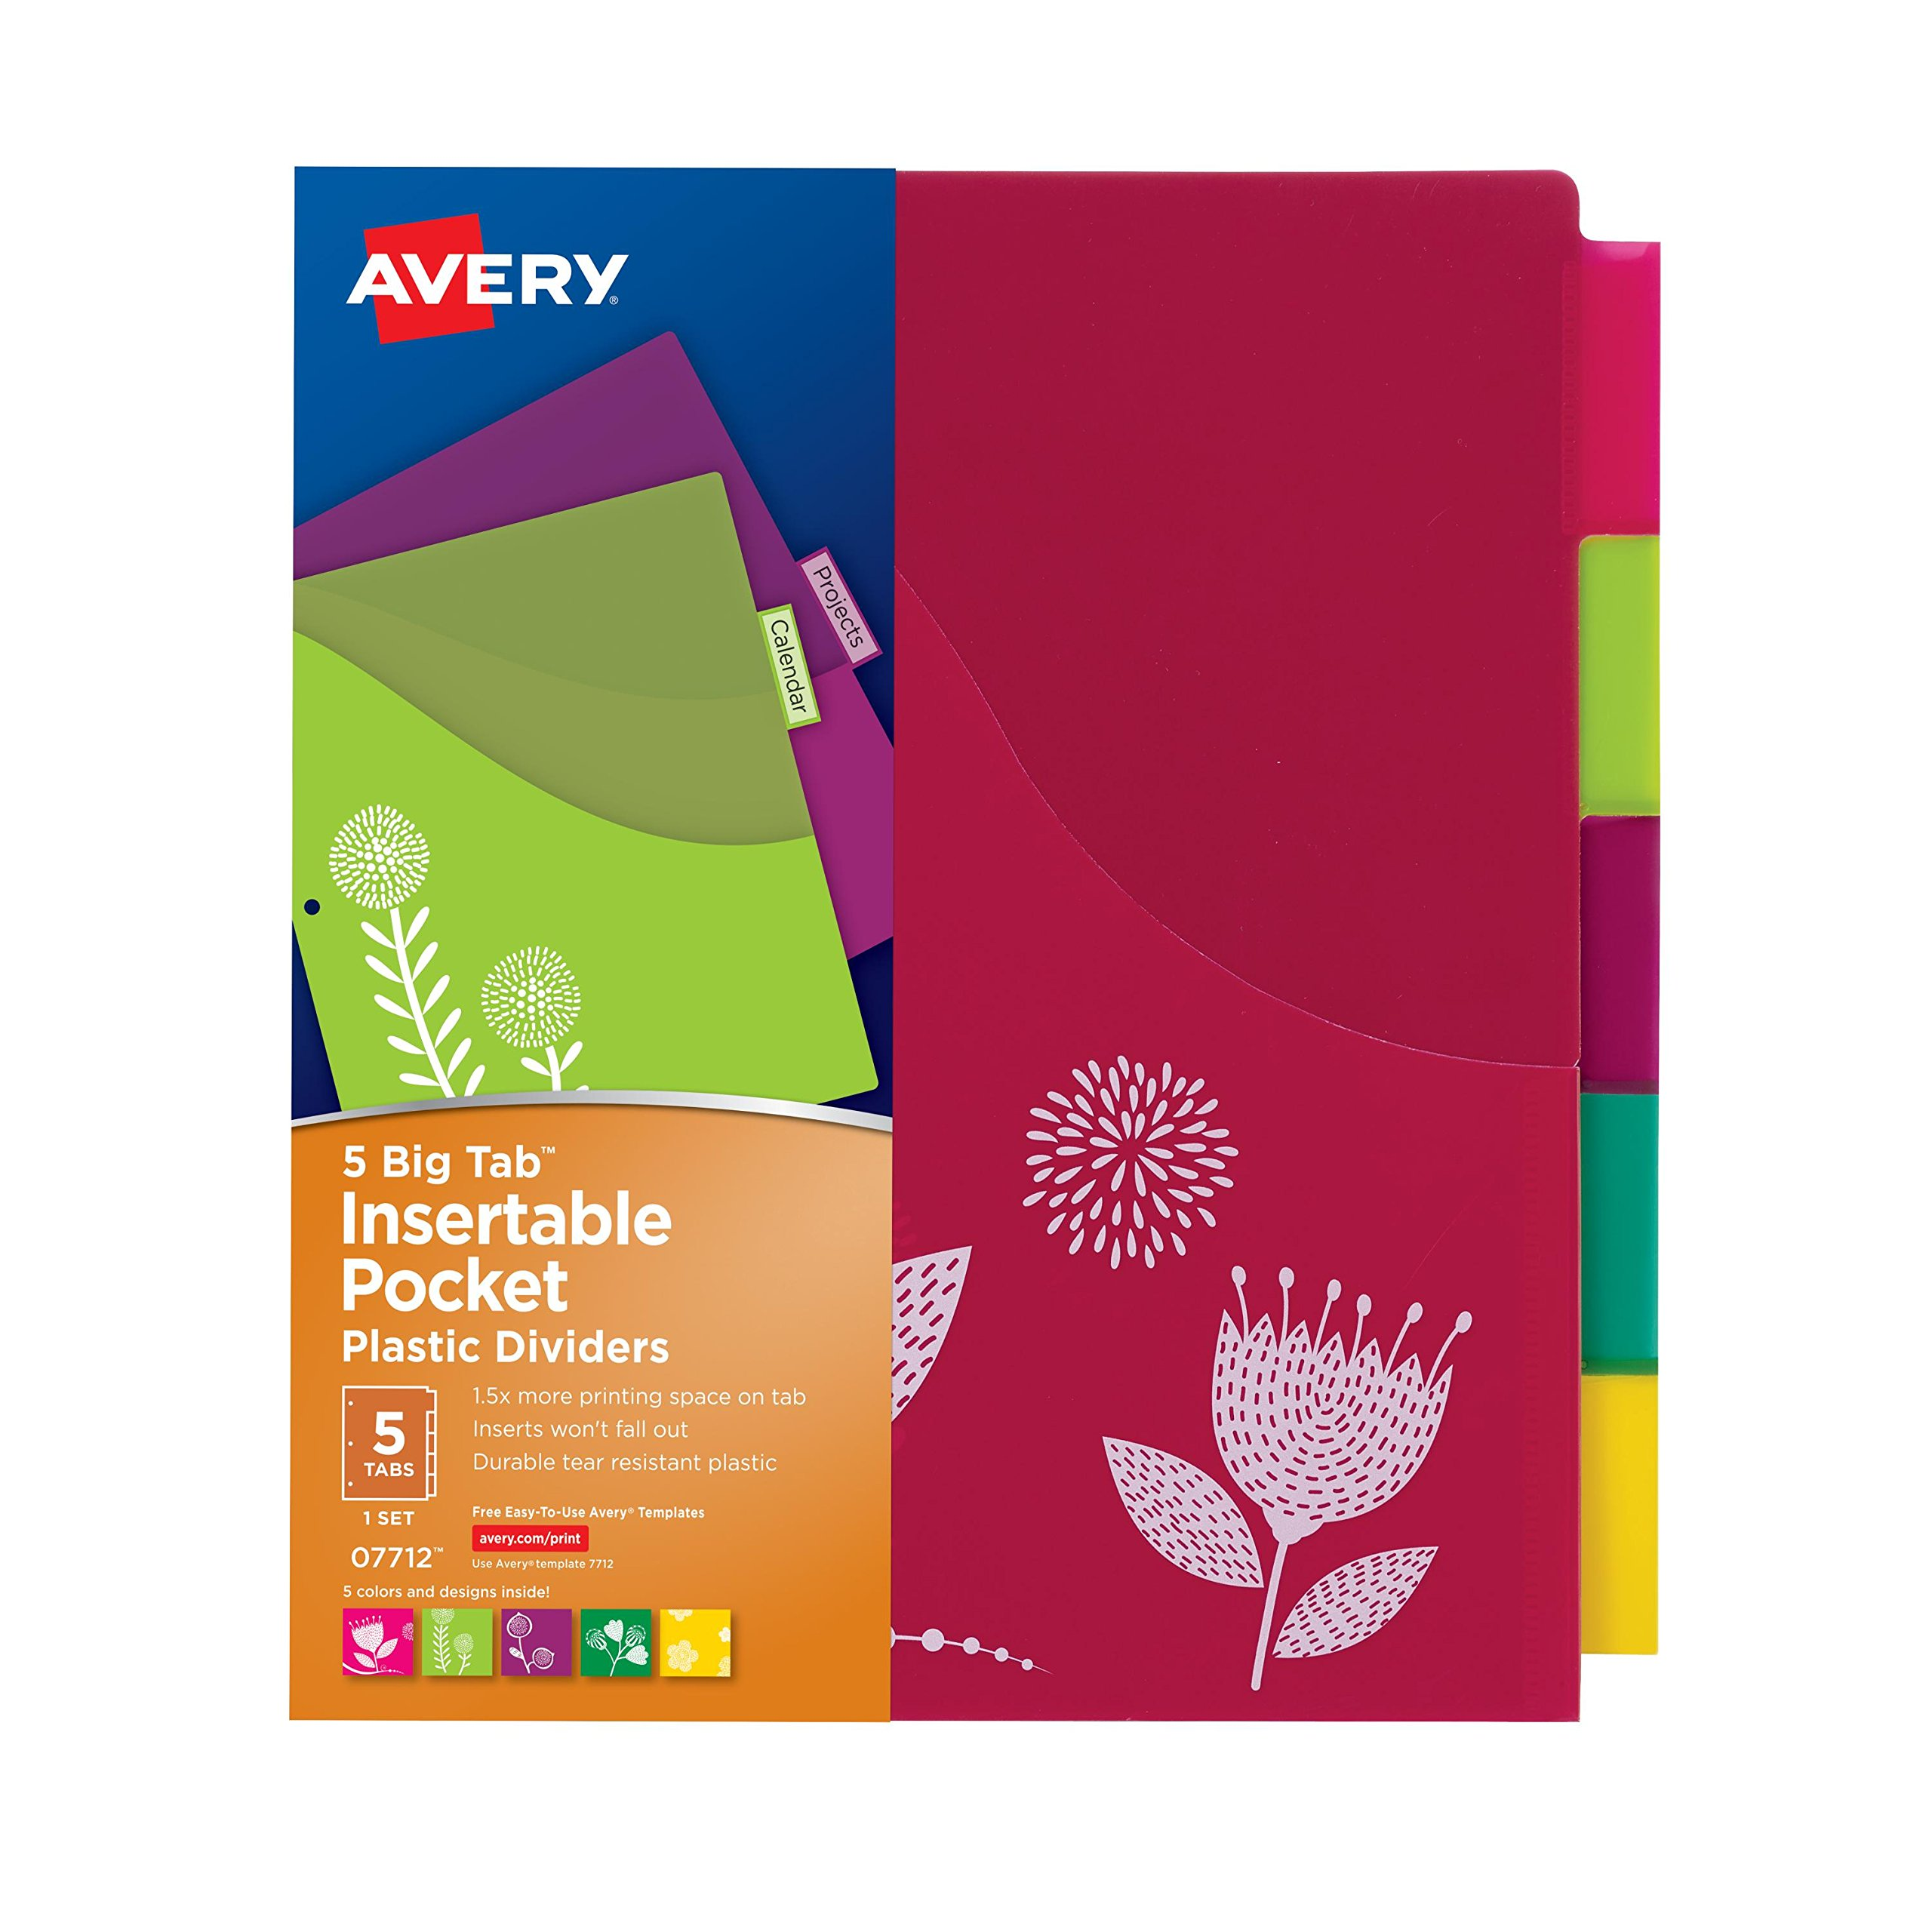 Avery Big Tab Insertable Plastic Dividers w/Pockets, 5 Tabs, 1 Set, Assorted Fashion Designs (07712)